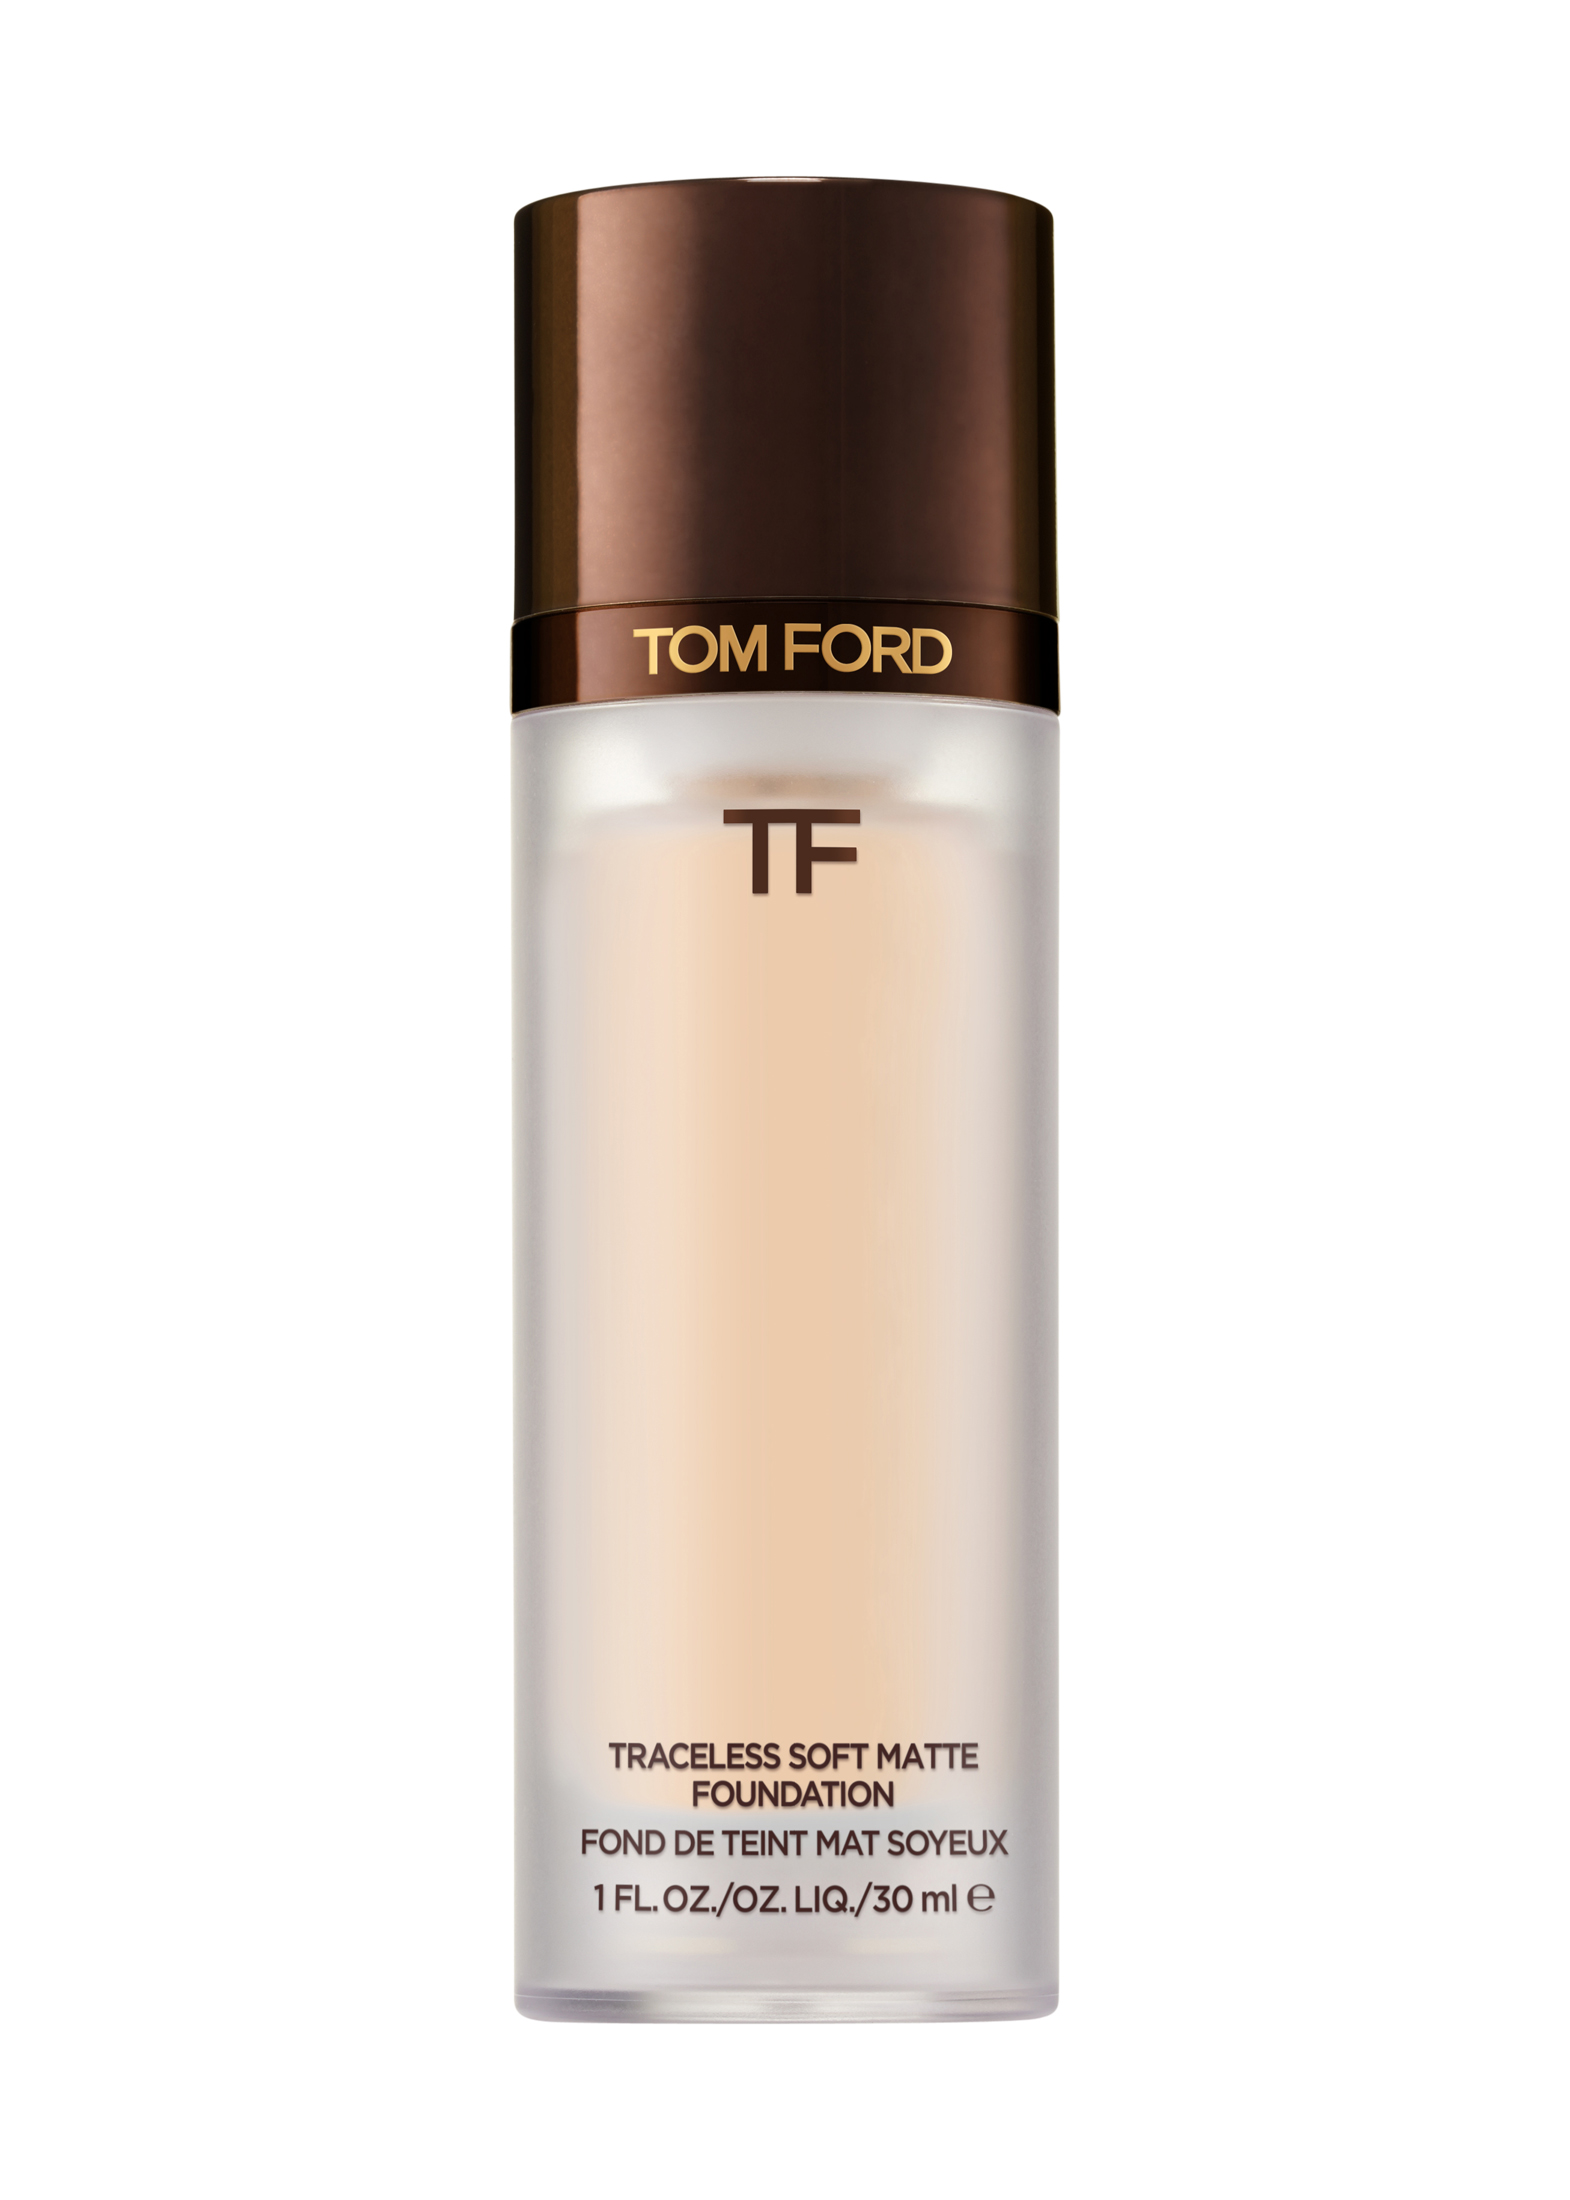 Traceless Soft Matte Foundation 30ml PEARL image number 0